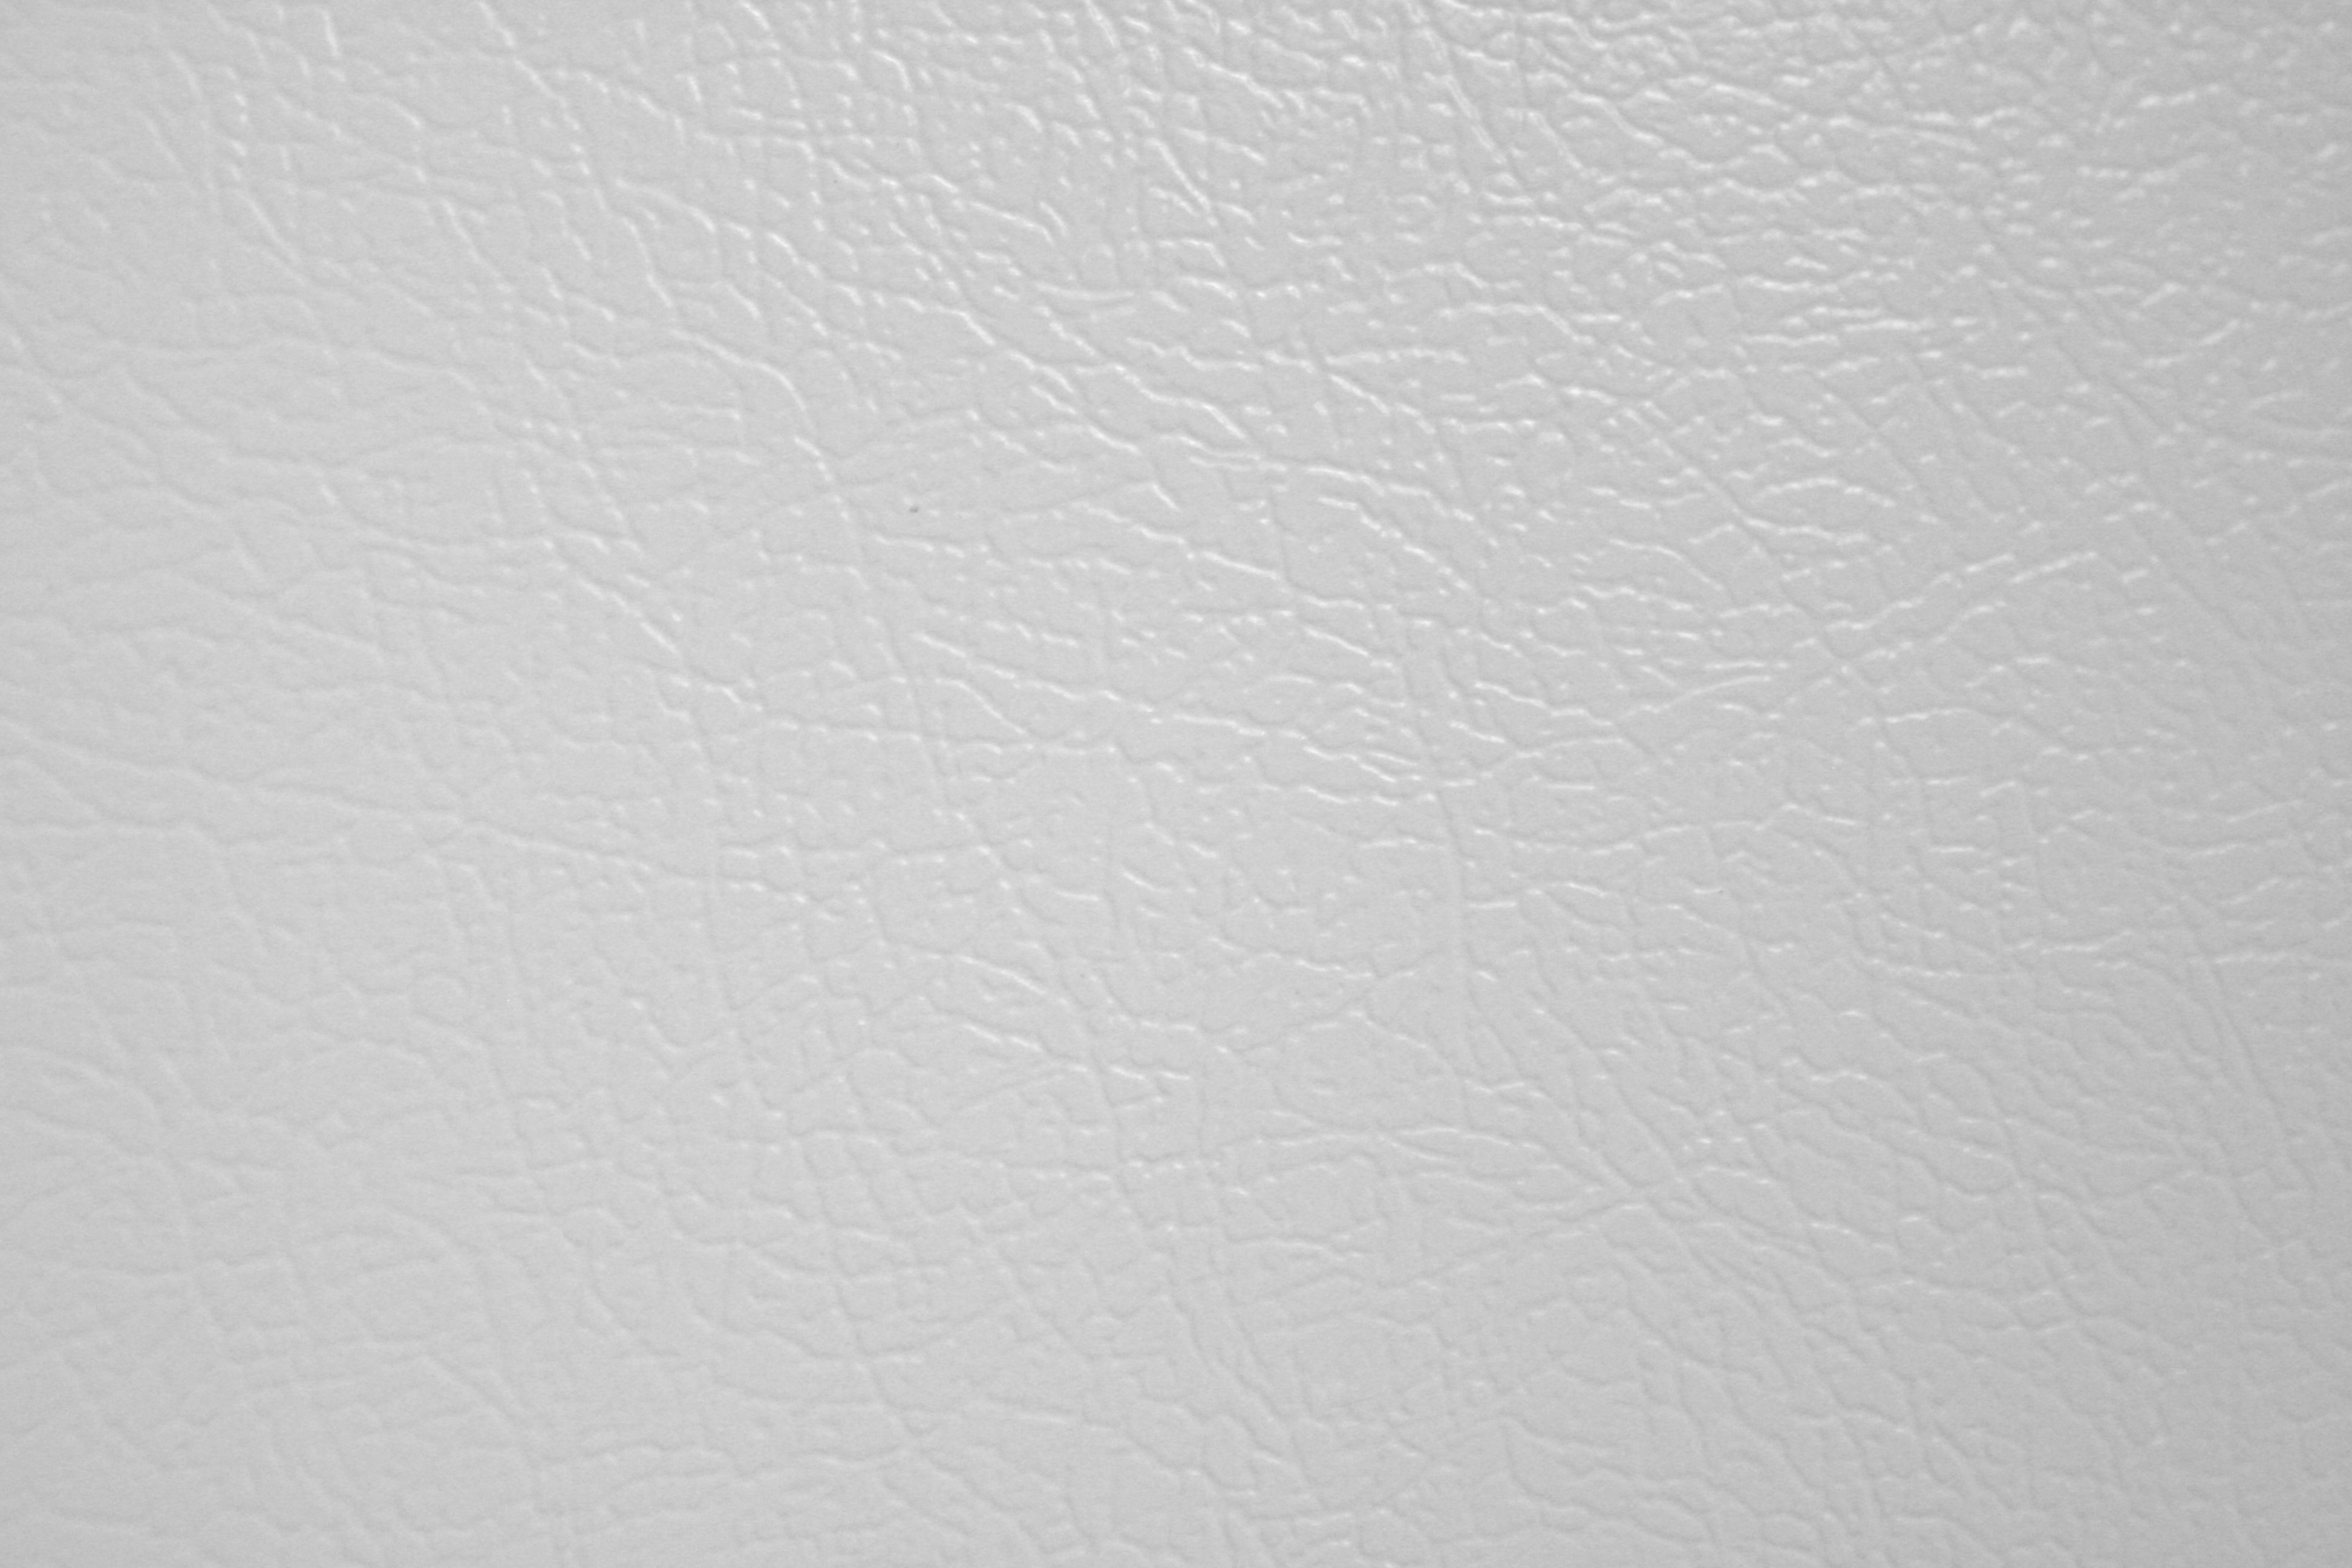 White Faux Leather Texture Picture | Free Photograph | Photos Public ... for White Leather Texture Hd  75tgx